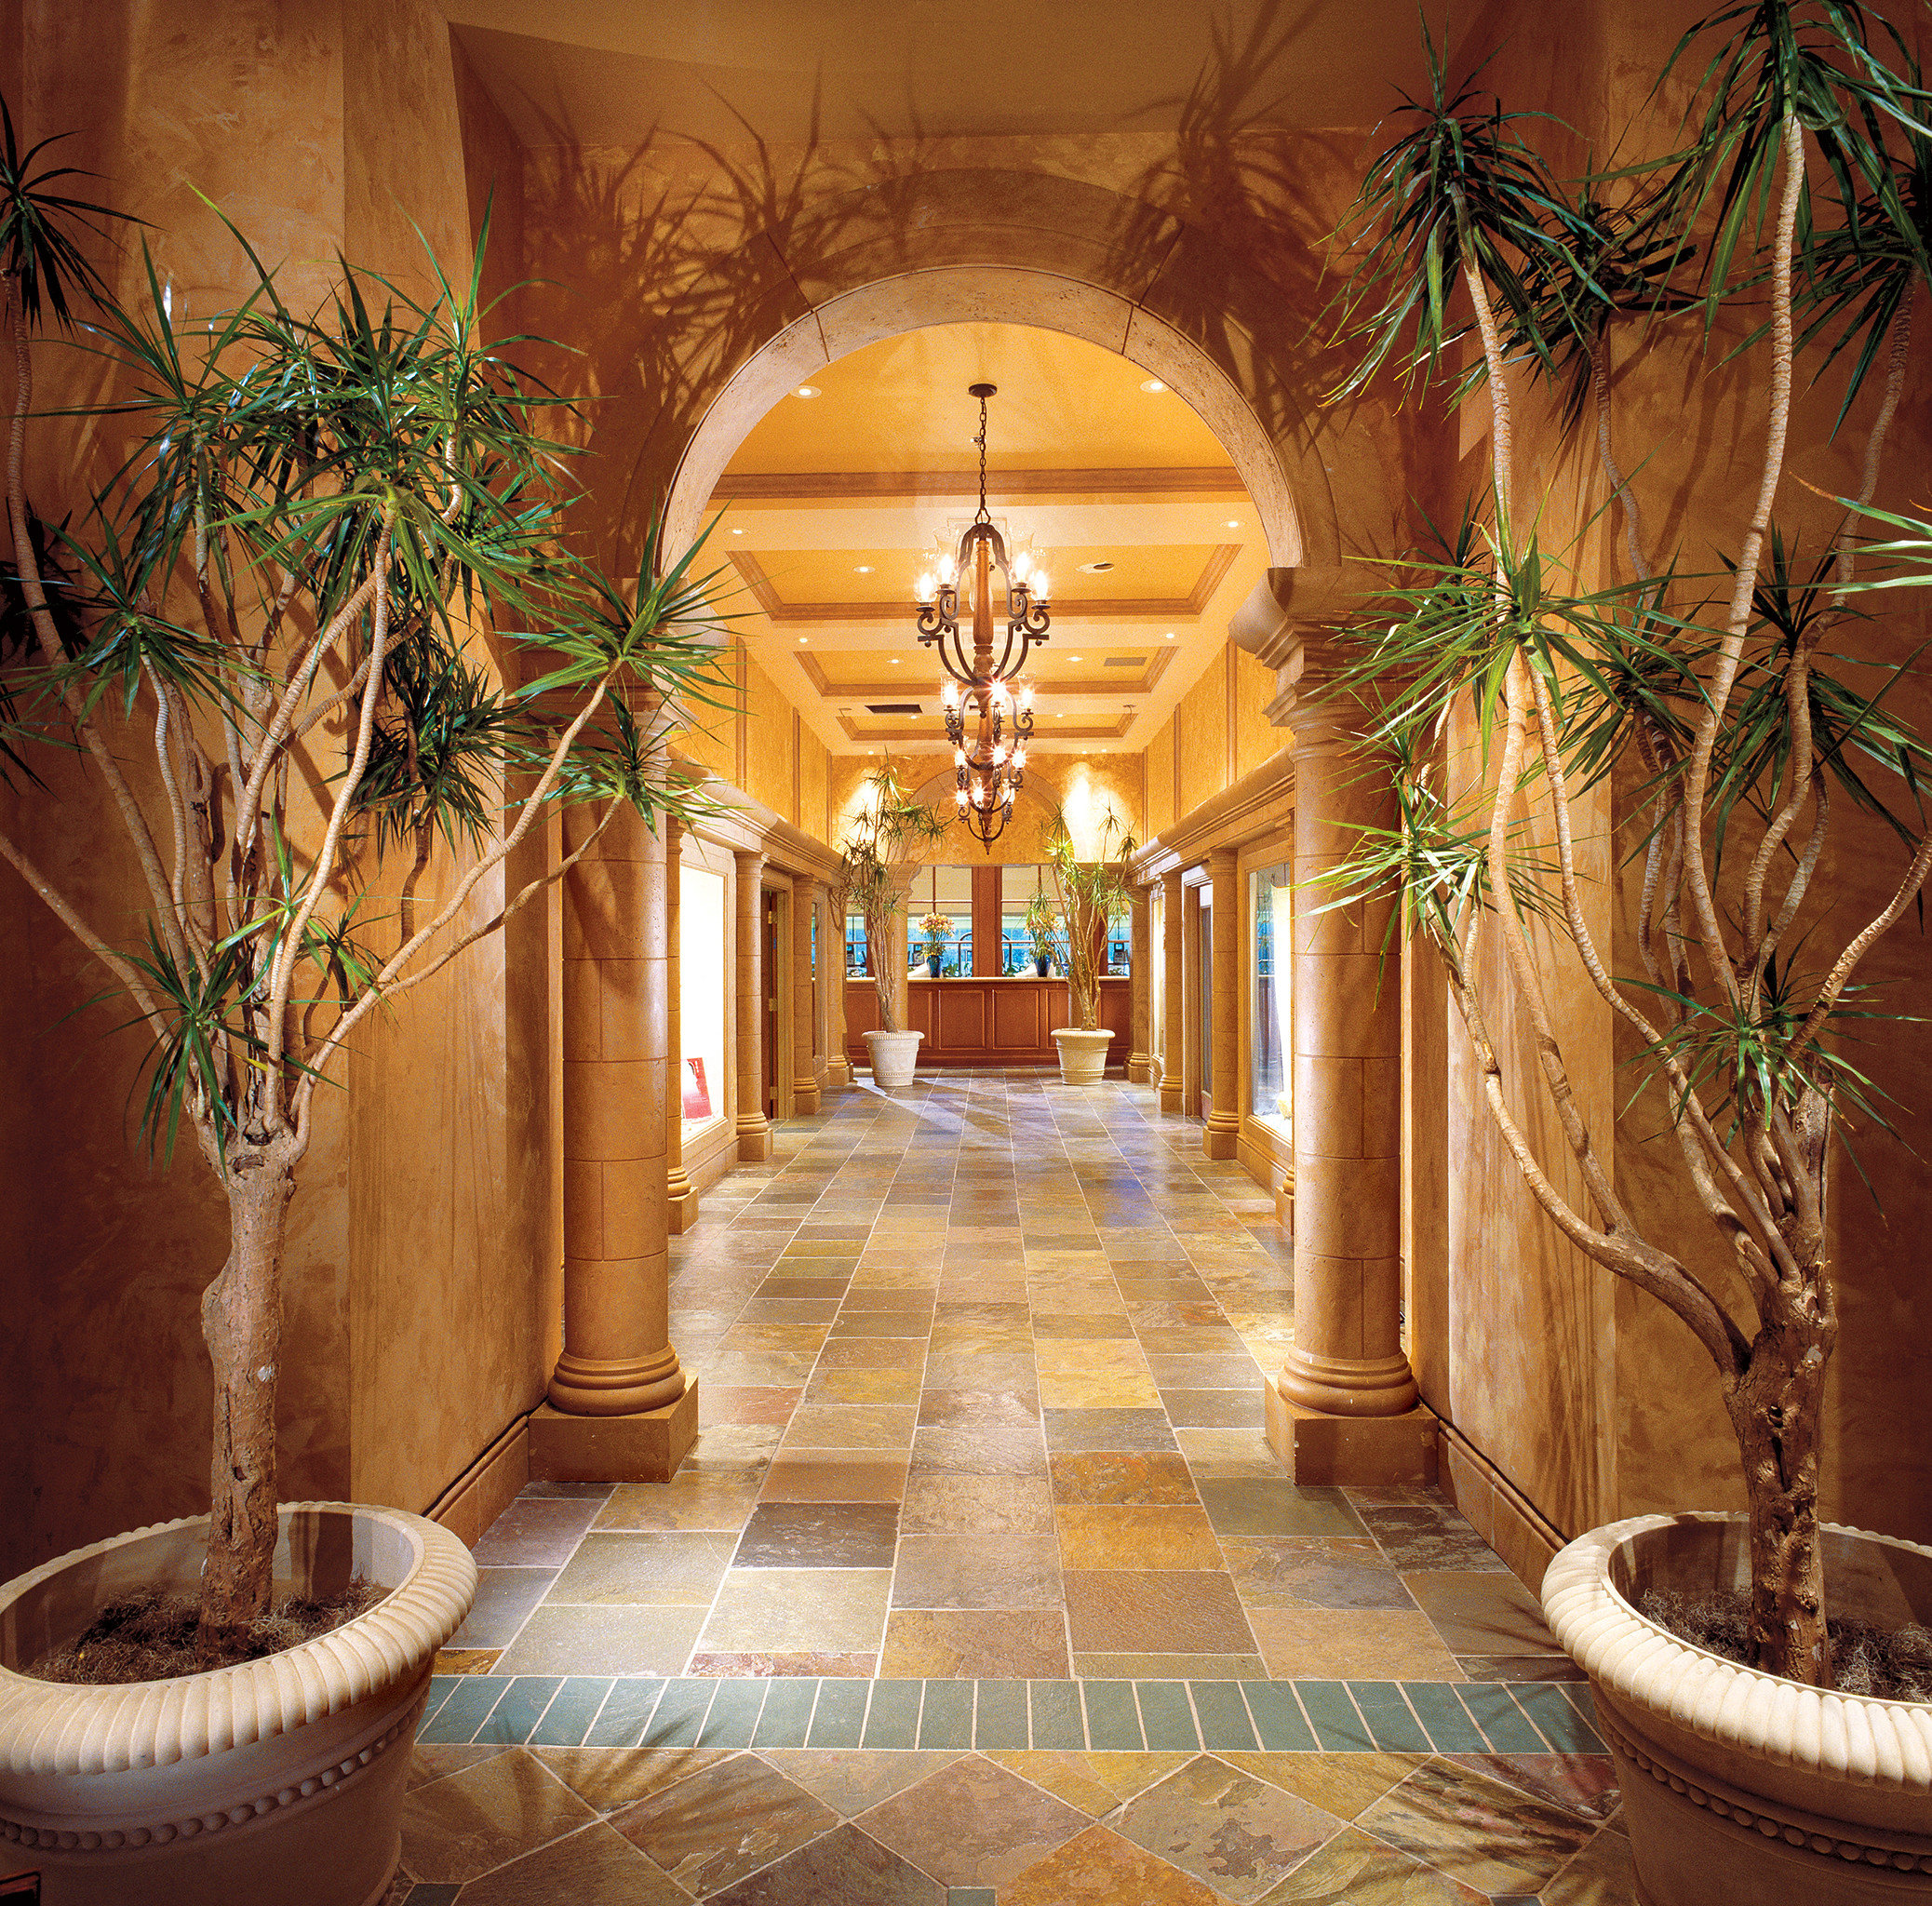 Lobby plant home mansion Courtyard palace hacienda living room arch stone